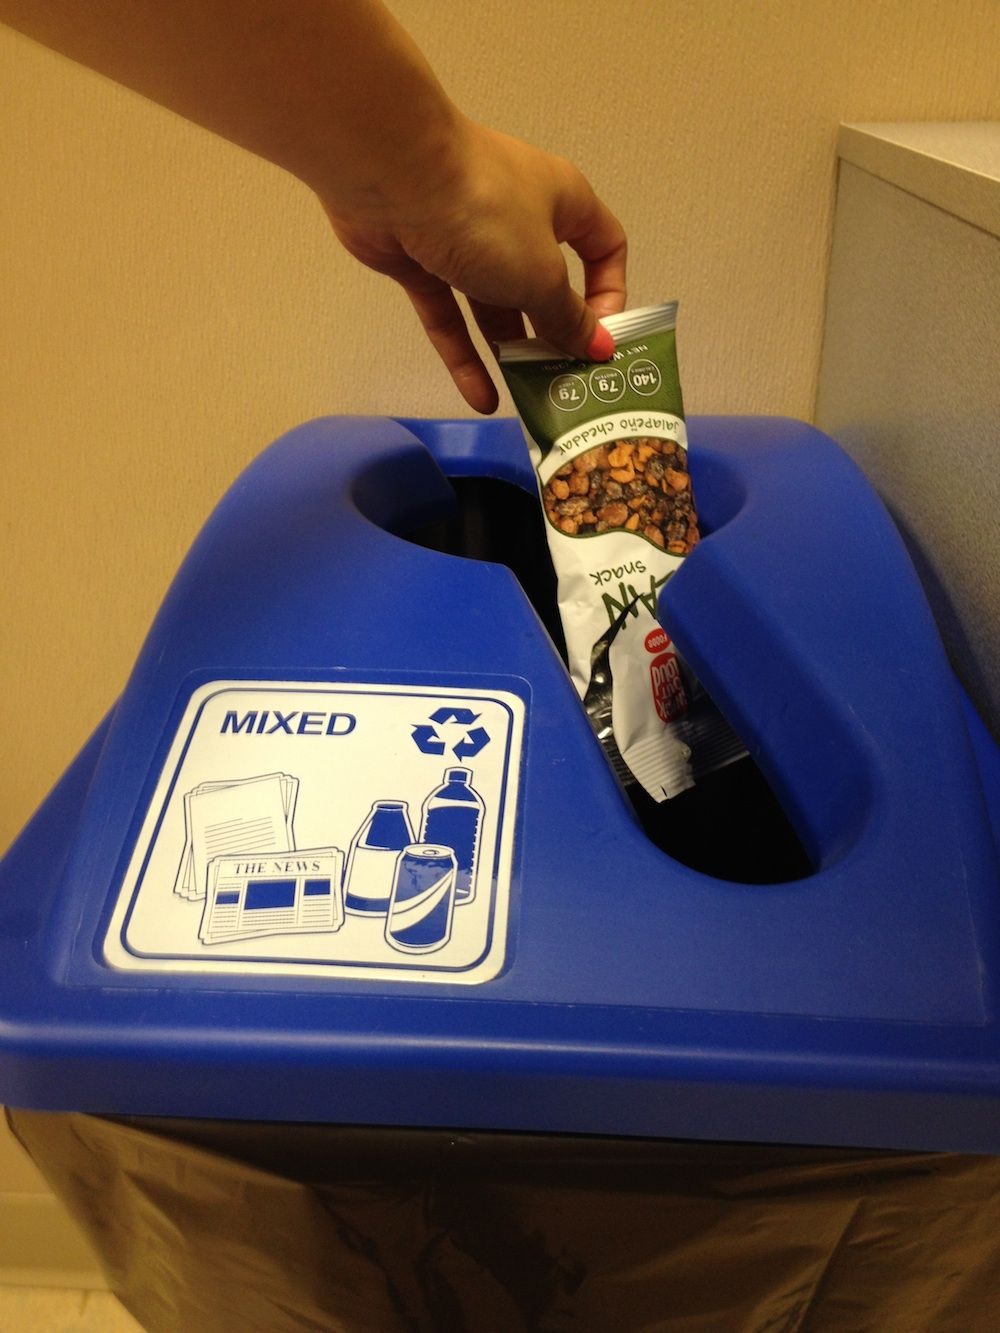 Recycled & Recyclable. We do our part! #Green #Recycle